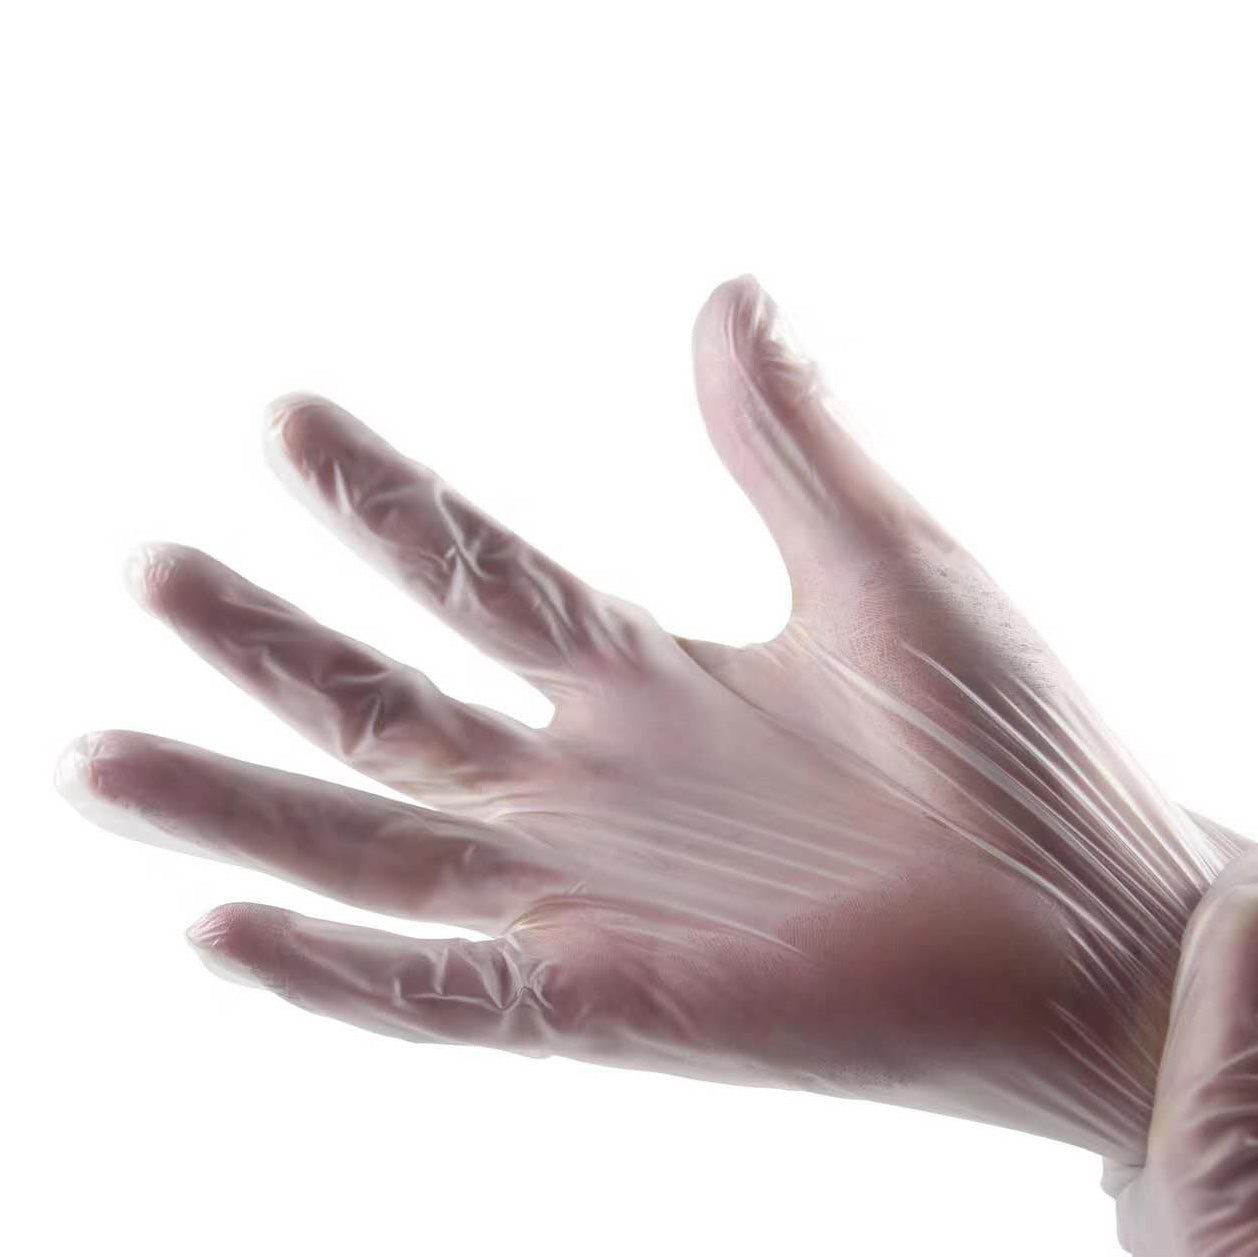 Latex-Free Vinyl Gloves (Set of 50 Pairs)